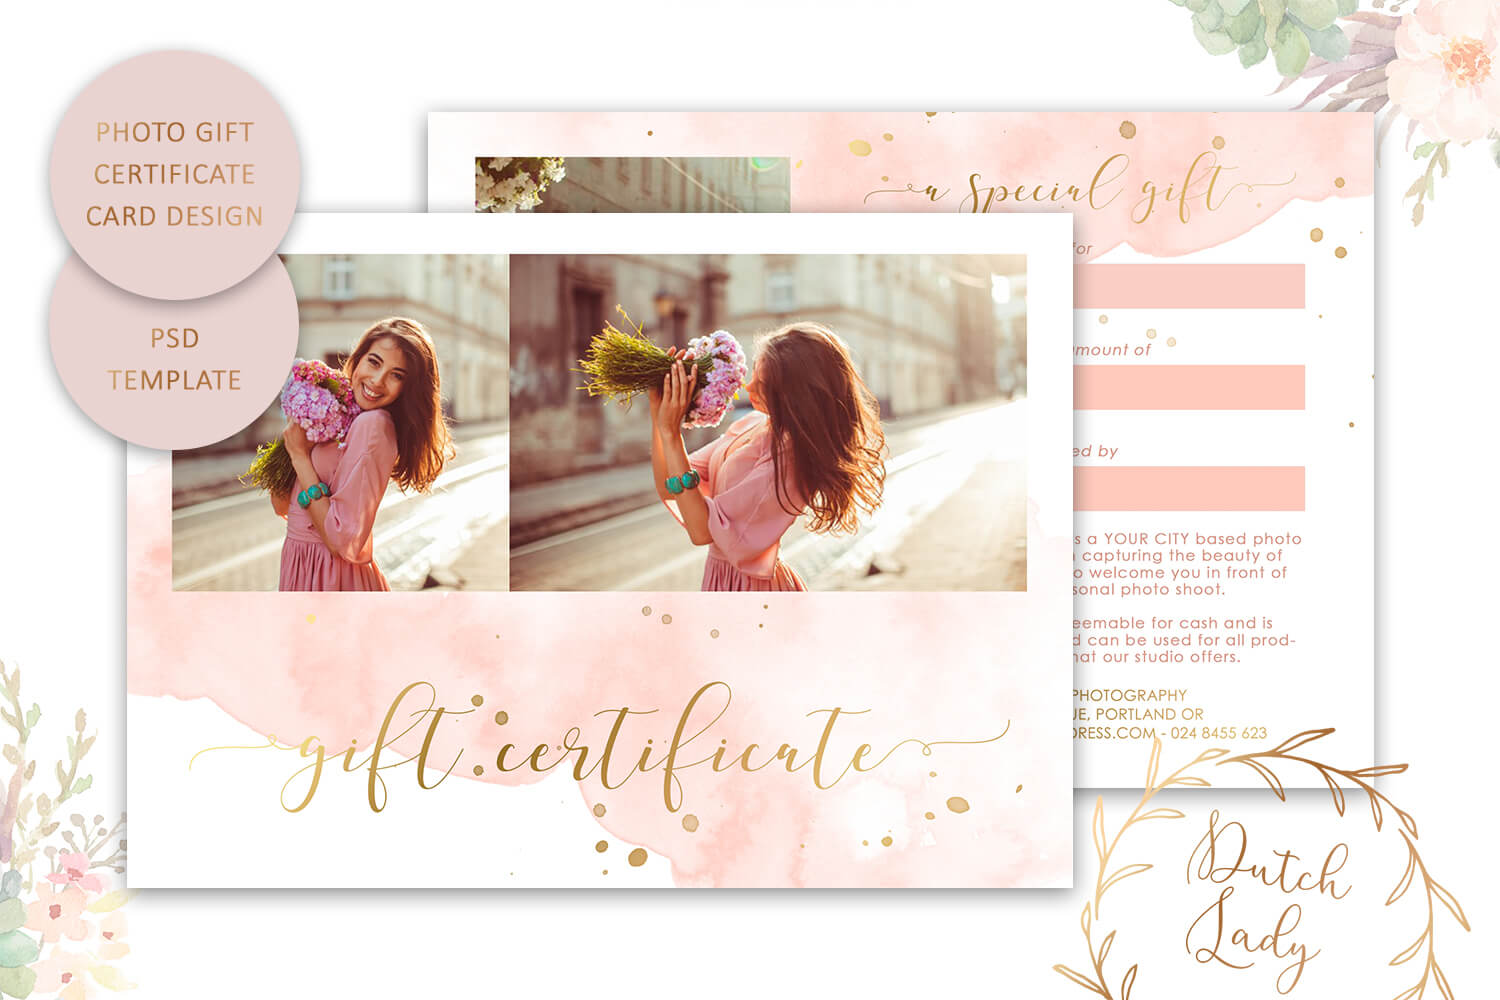 008 Template Ideas Photo Gift Card Photography Stirring With Photoshoot Gift Certificate Template